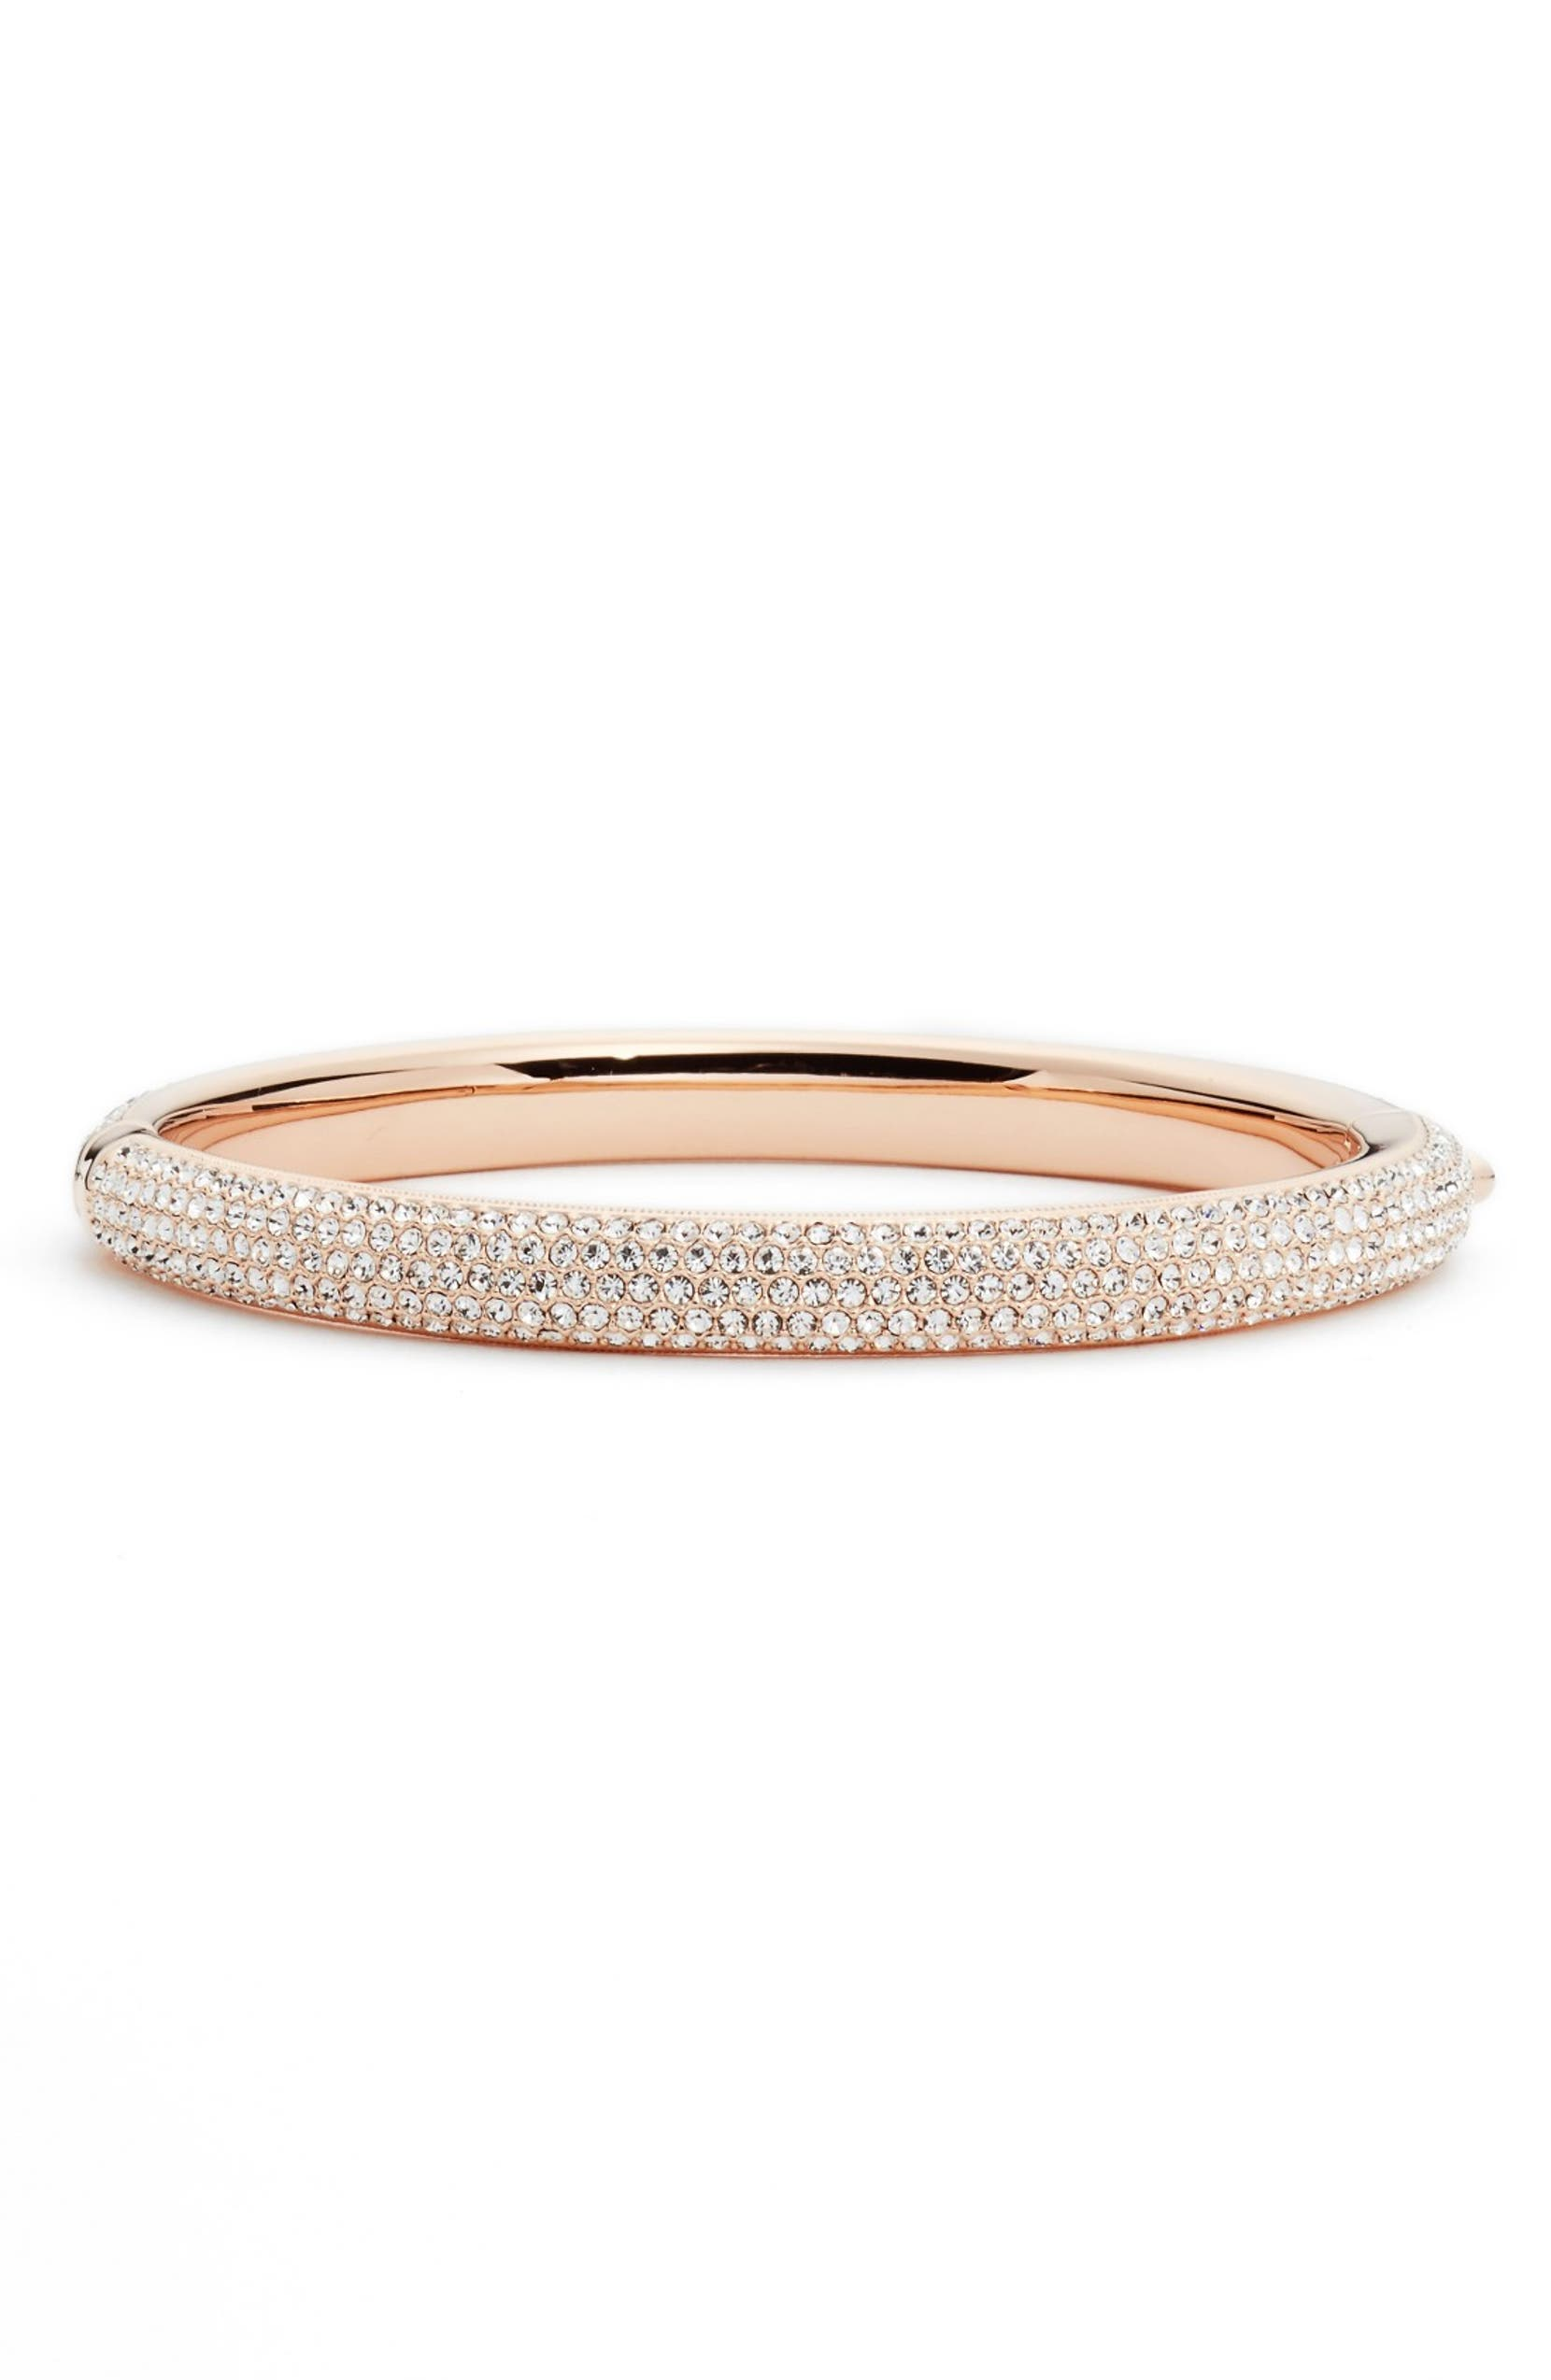 hand cc products the skye collection bracelet bangles second pave spike love bangle fifth